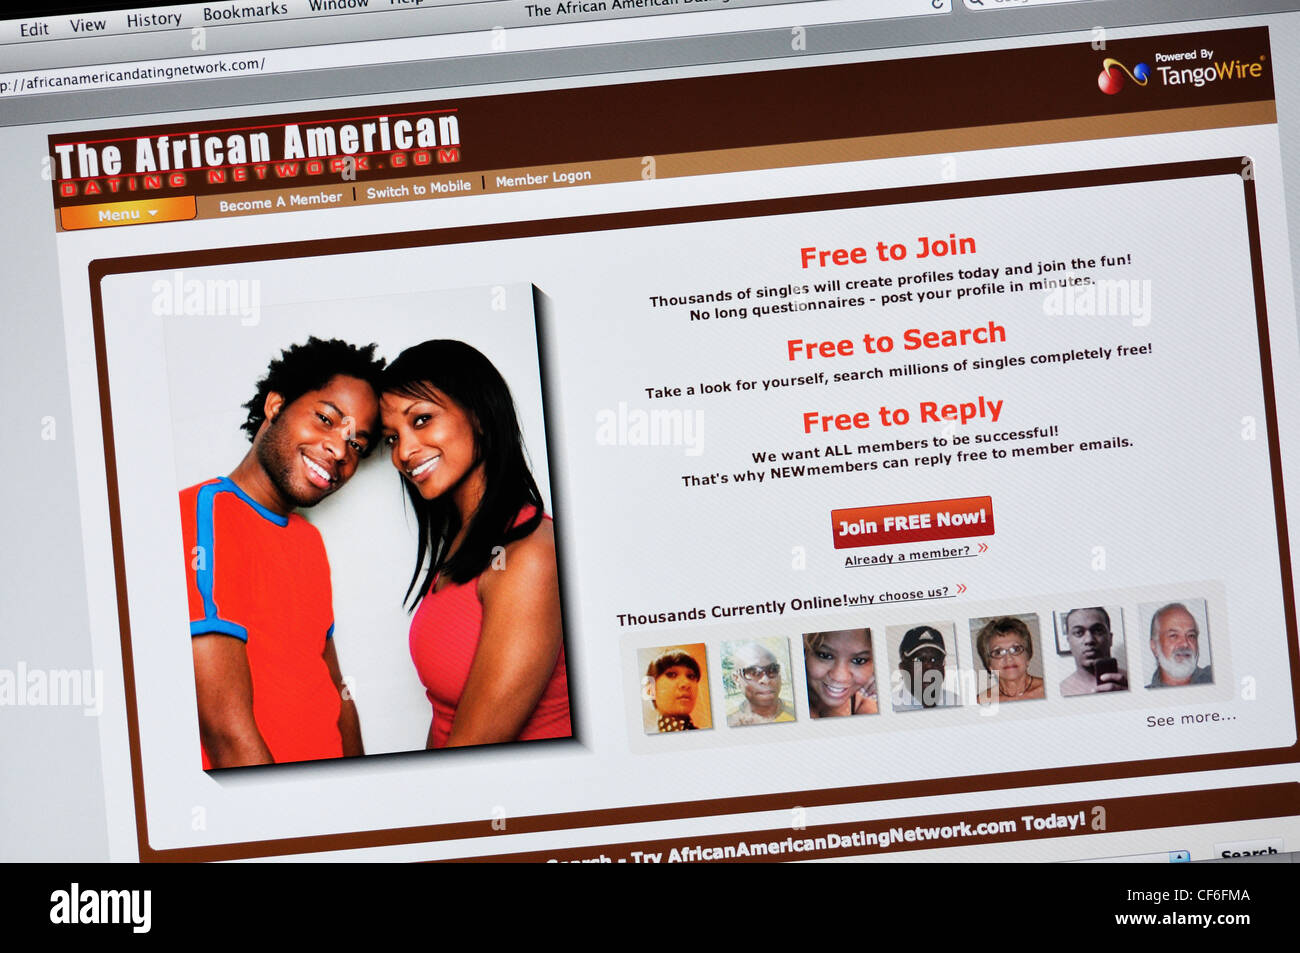 African dating website free